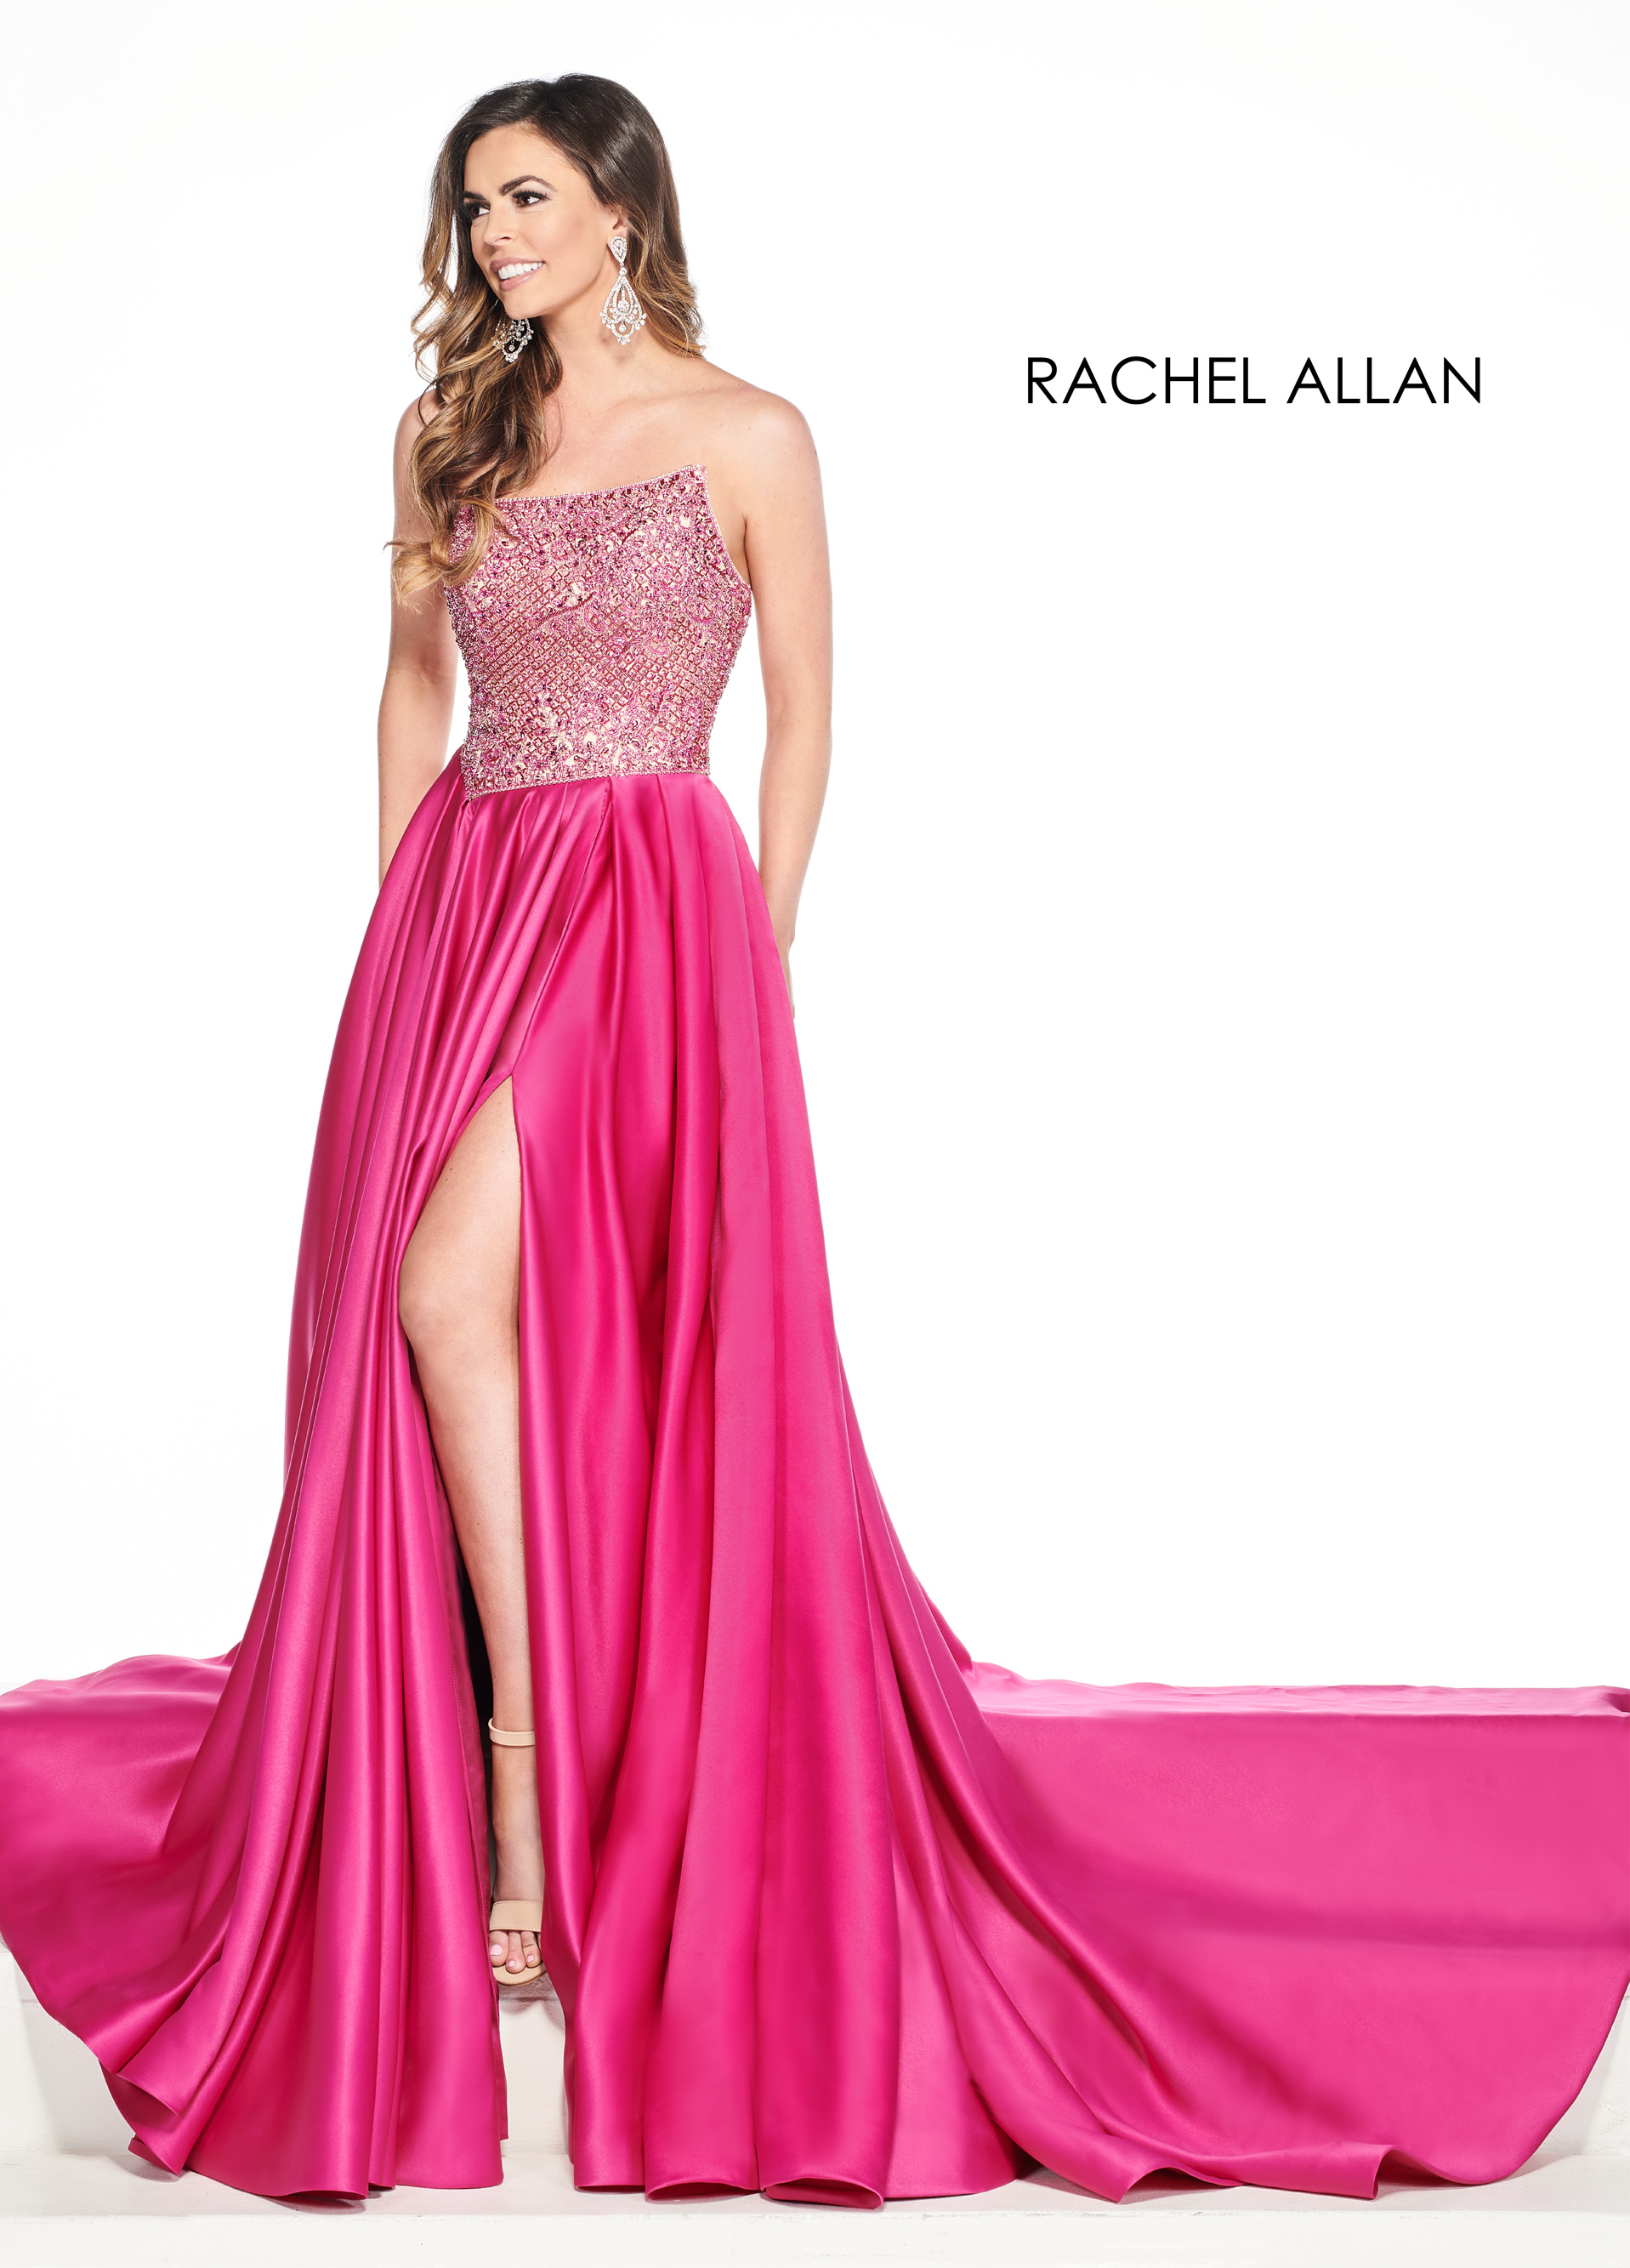 Strapless A-Line Pageant Dresses in Magenta Color